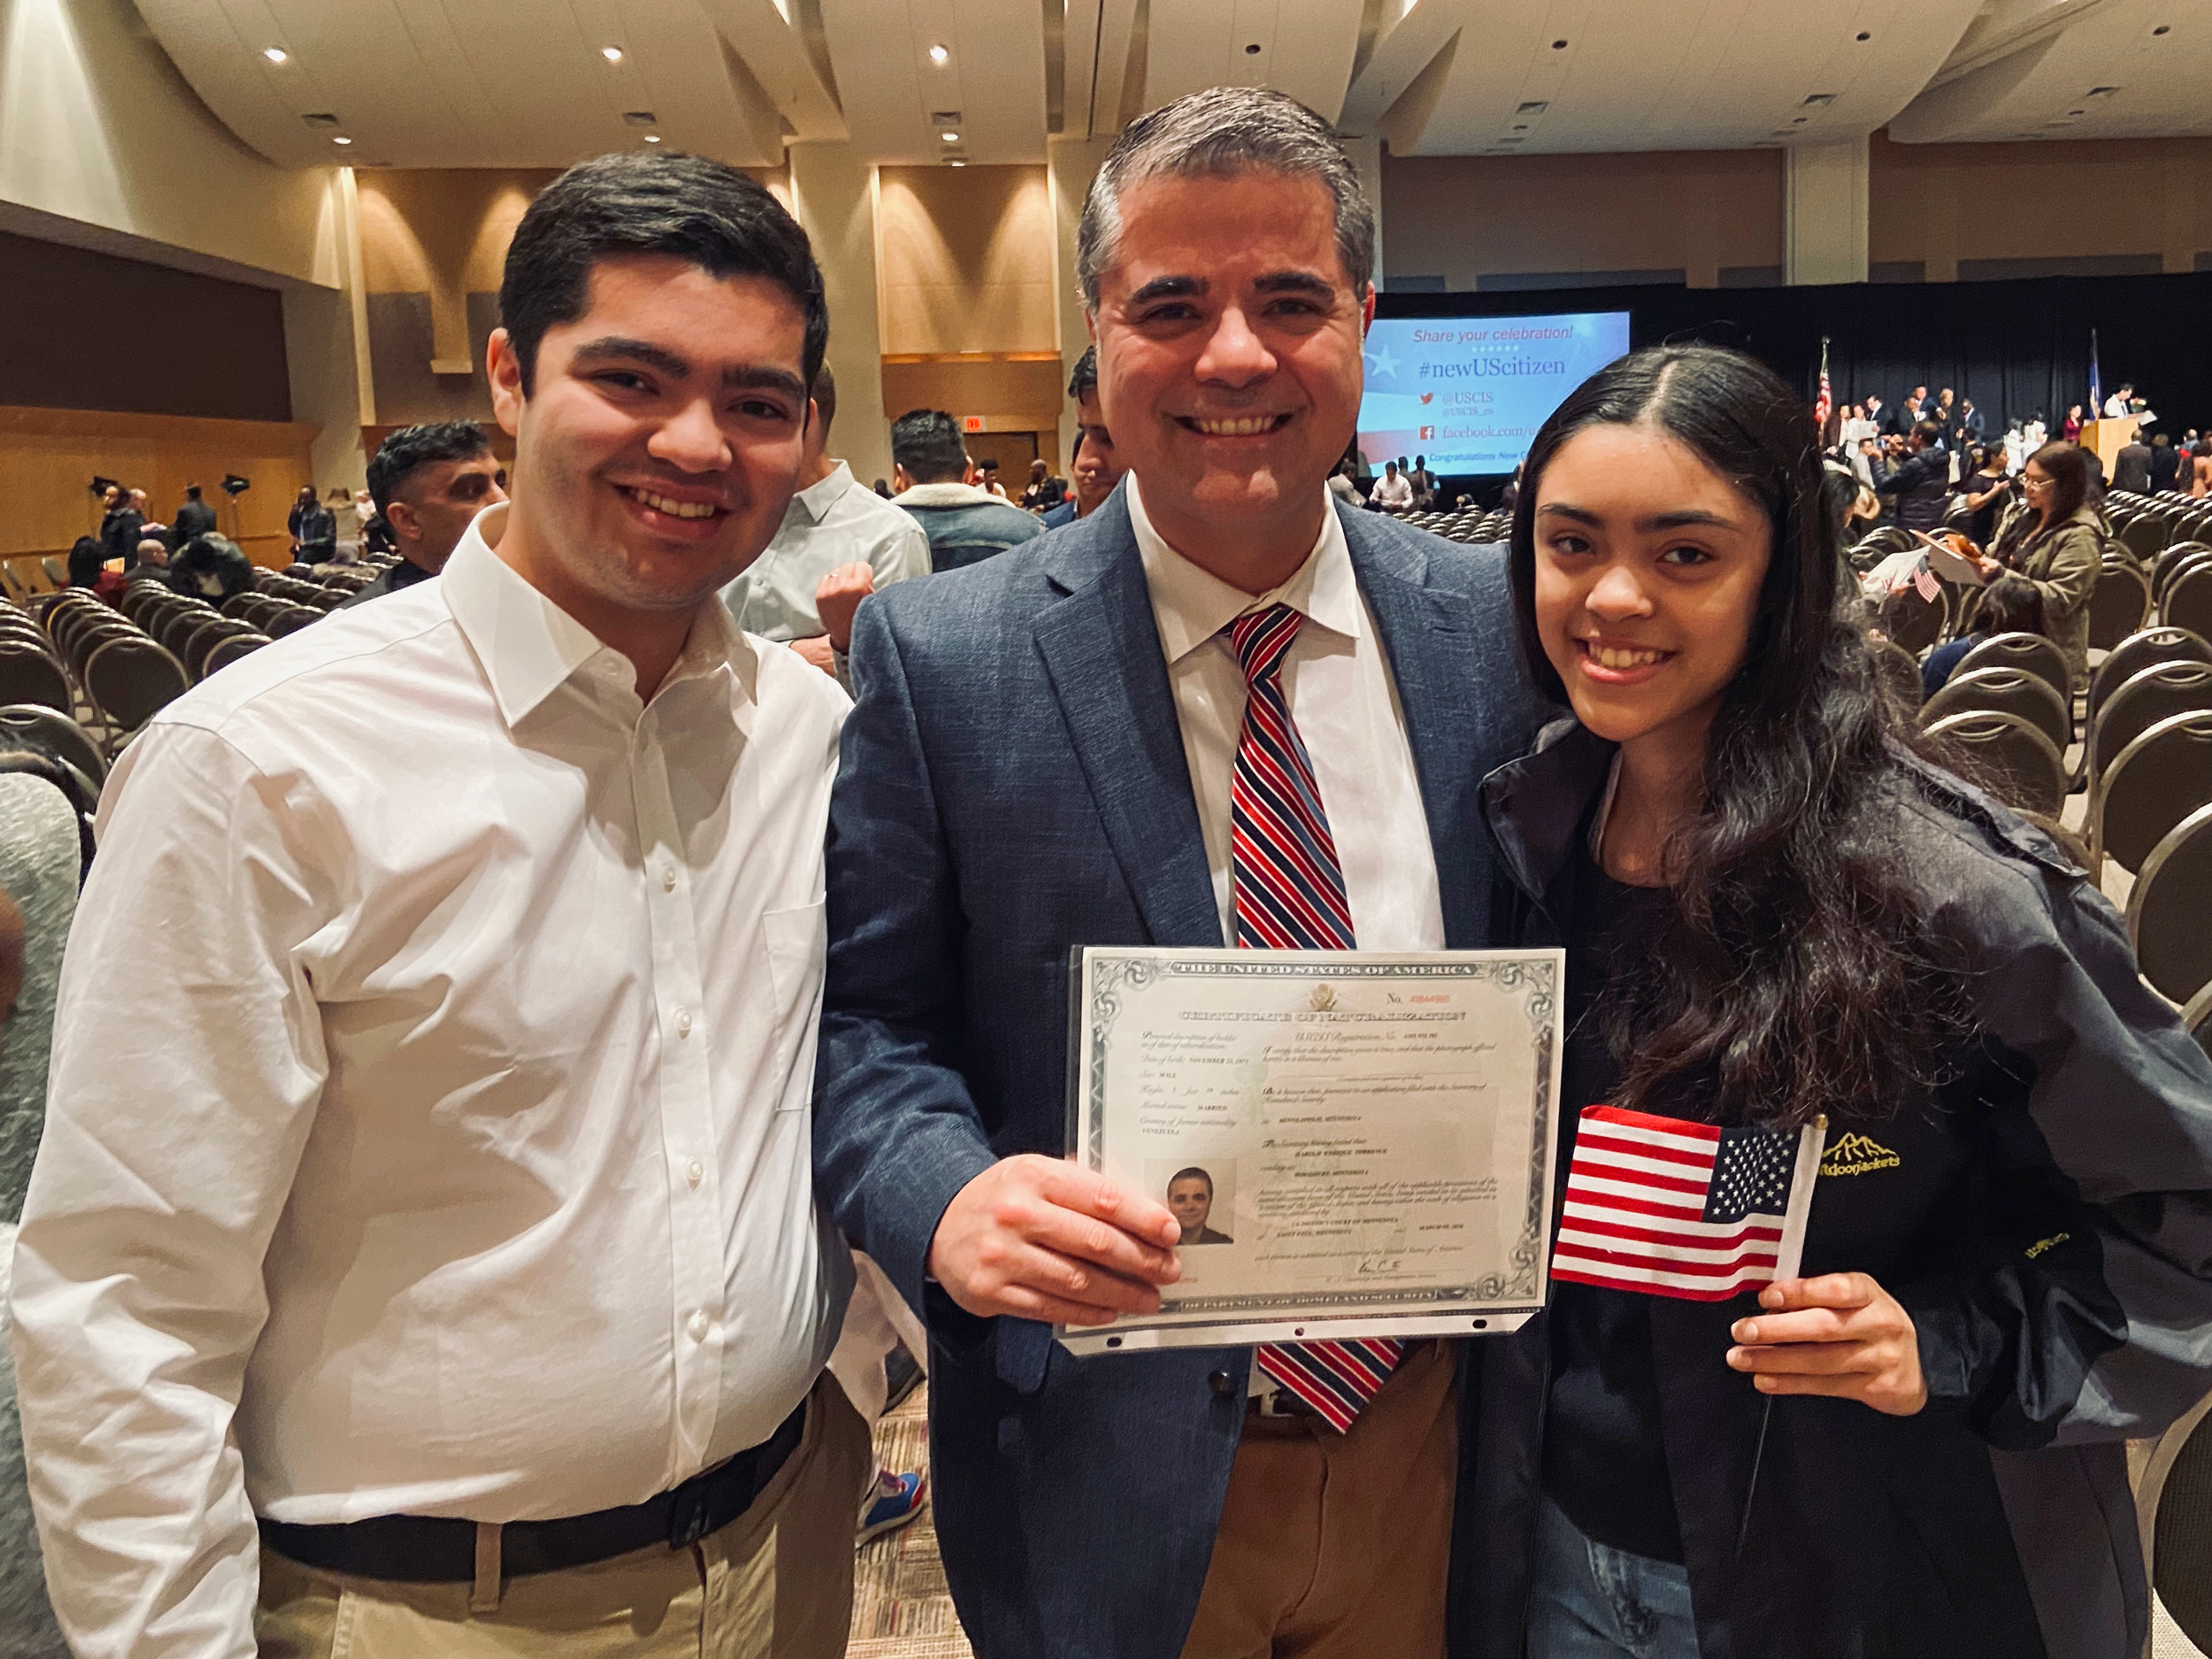 U.S. citizen! Harold with son, Jonathan, and daughter, Susana